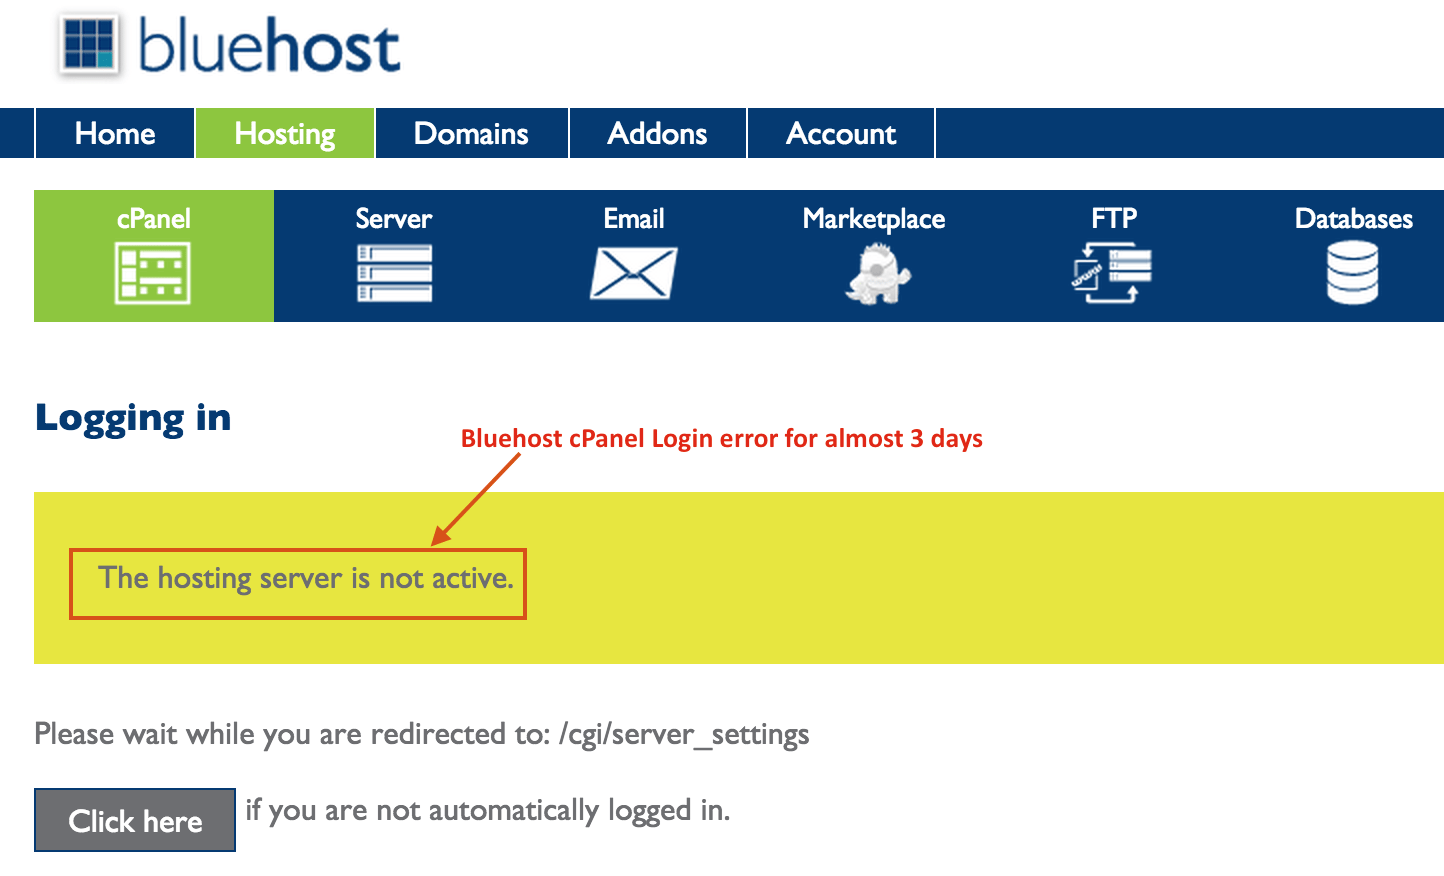 Bluehost SAN issue - cPanel Down